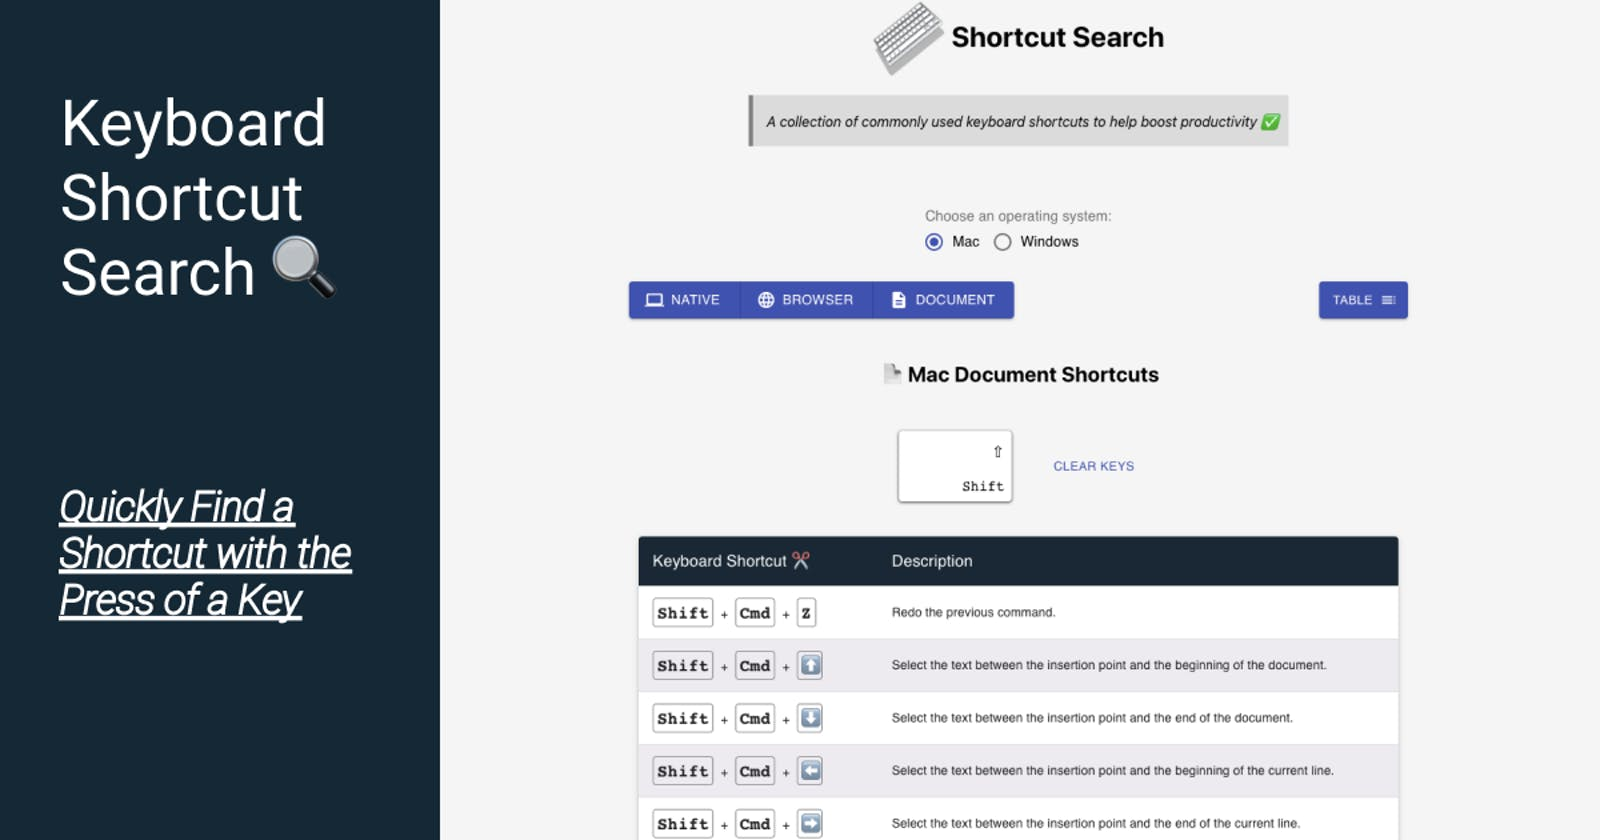 Shortcut Search: Quickly Find a Shortcut with the Press of a Key